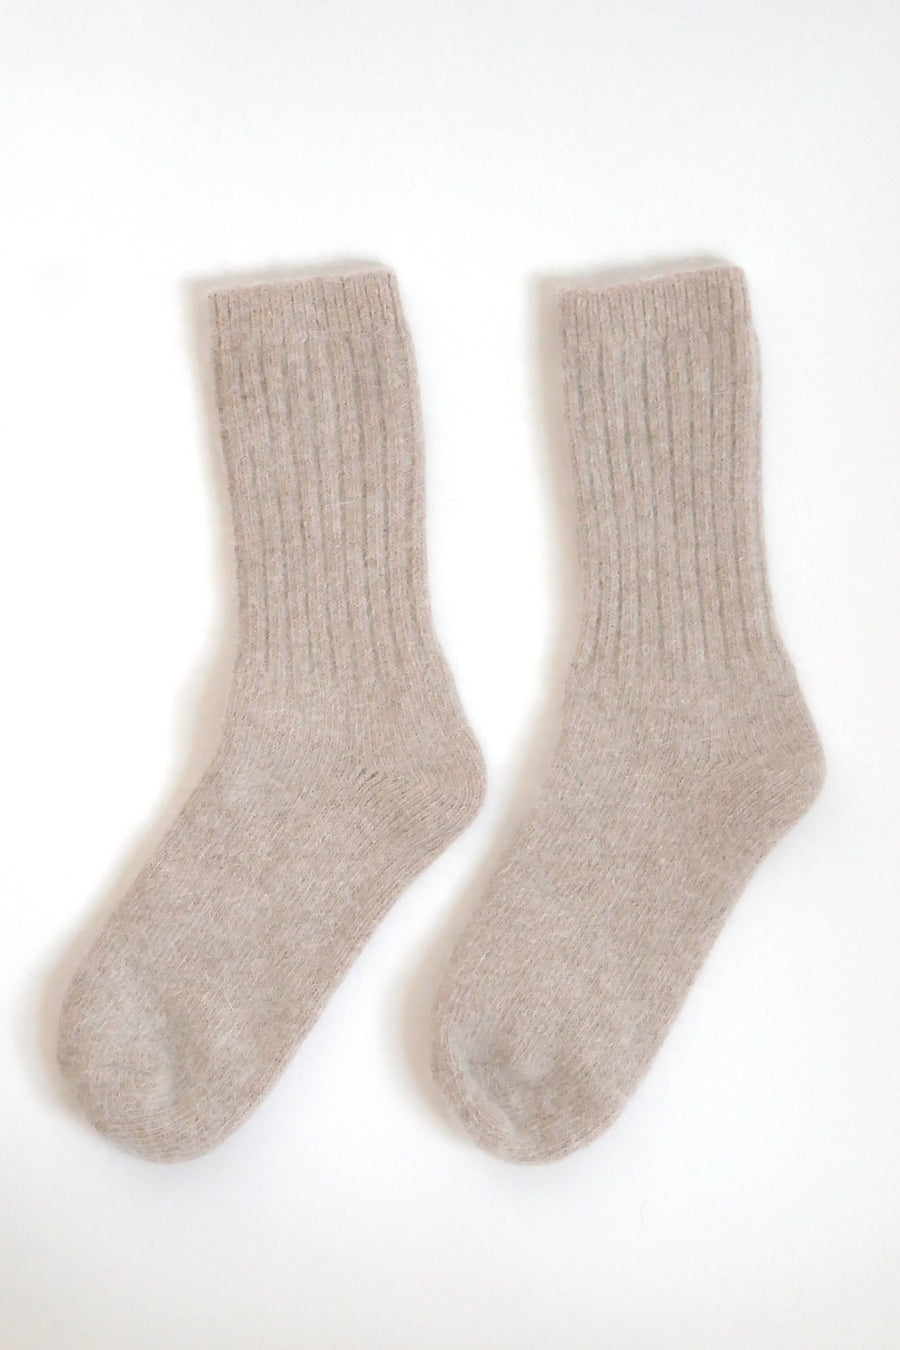 Super Soft Wool Socks - Beige